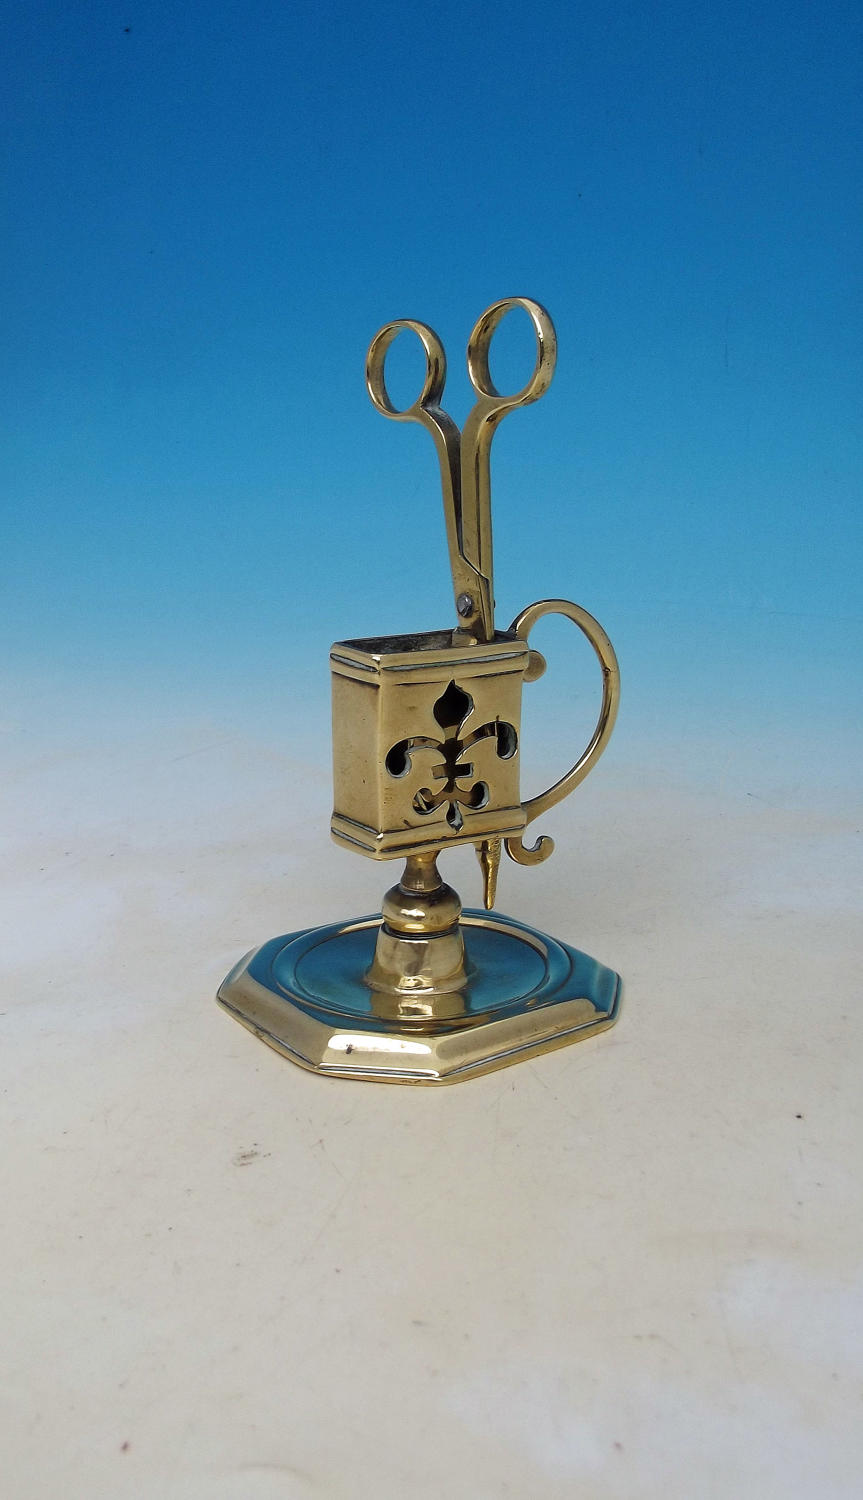 Antique 18thc Brass Candle Snuffer & Stand.  English / Continental